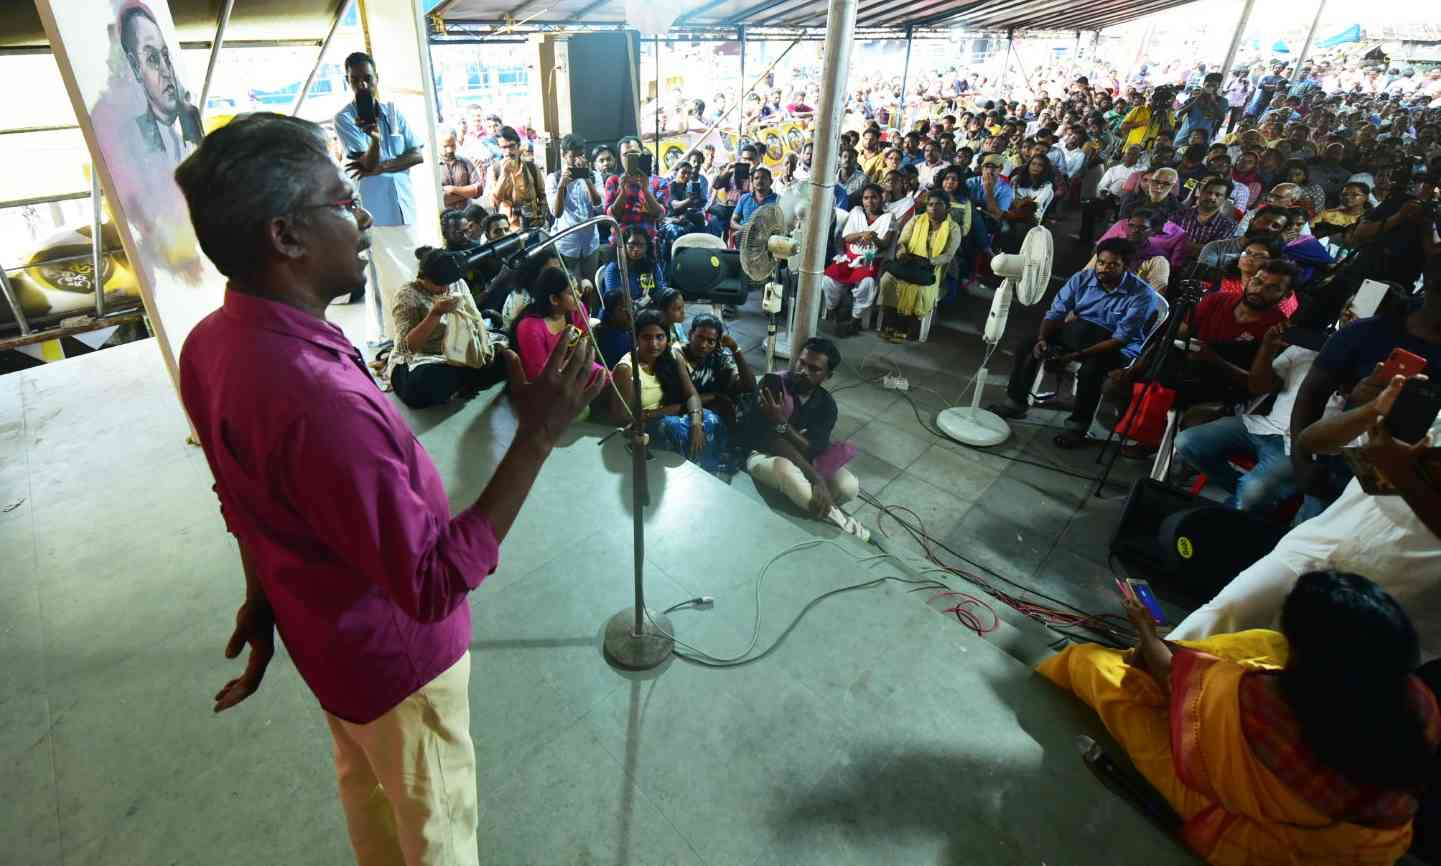 Sunny M Kapikkad's speeches against Sabarimala protests are attracting large audiences.